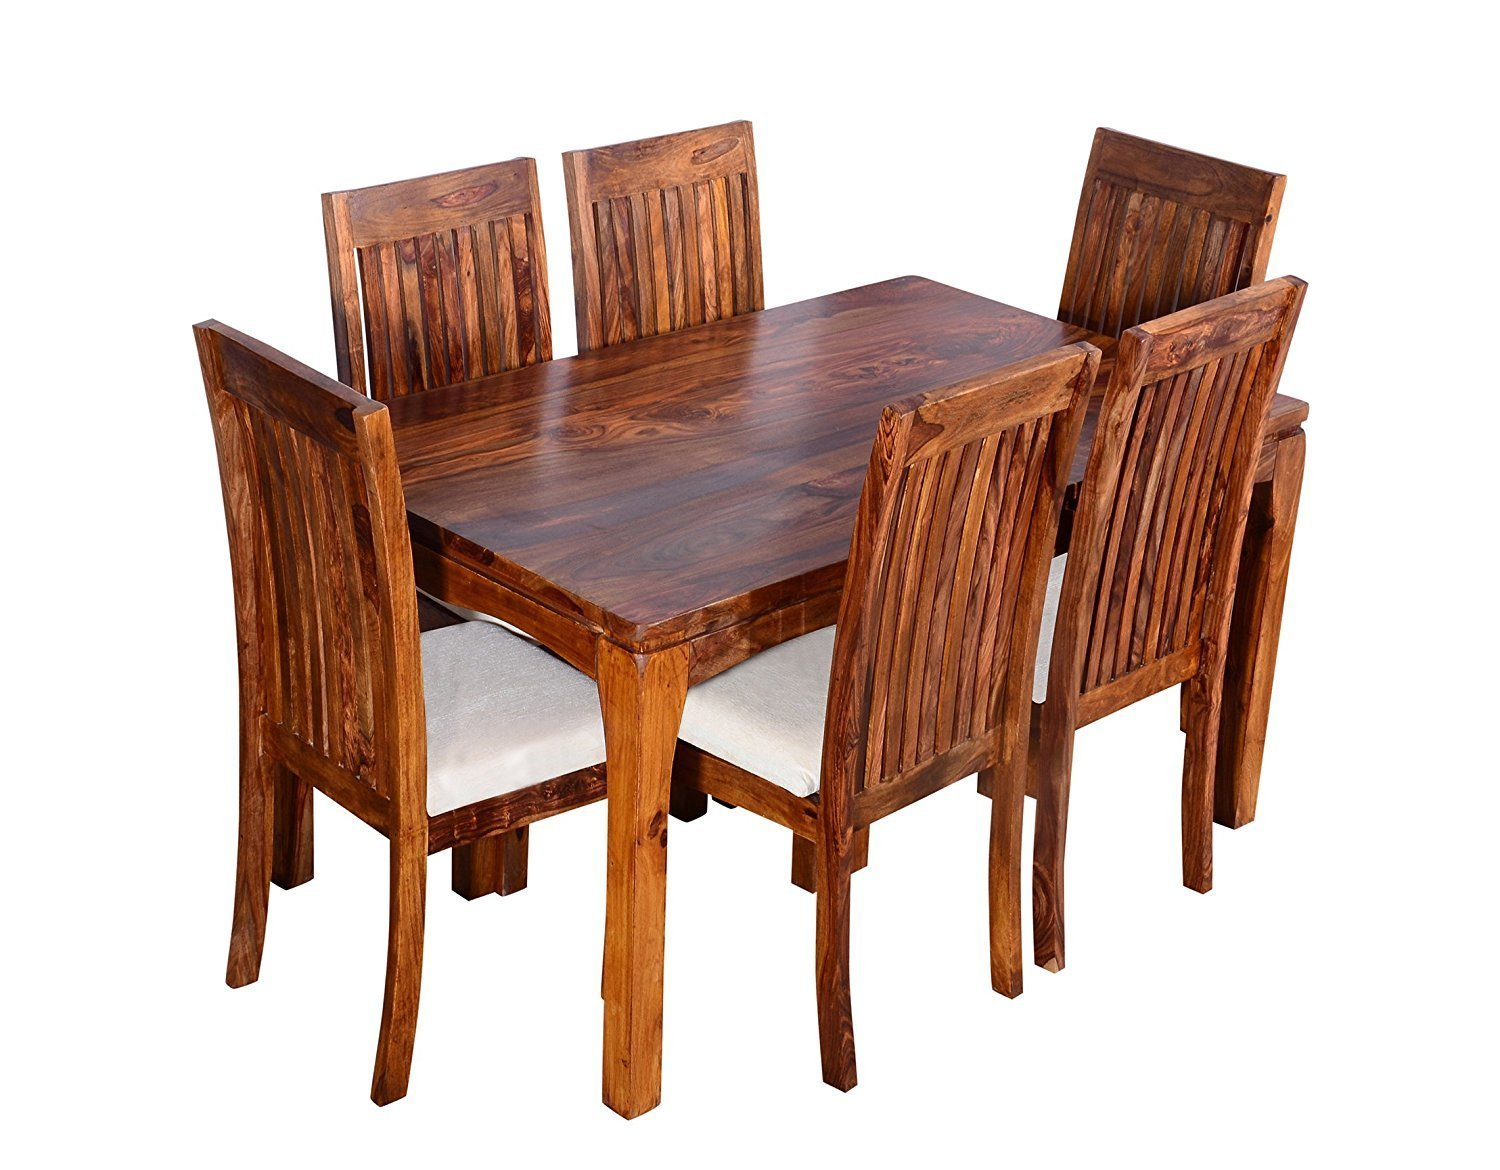 C k handicrafts teak finished solid sheesham wood 6 seater dining table set with curvy chair